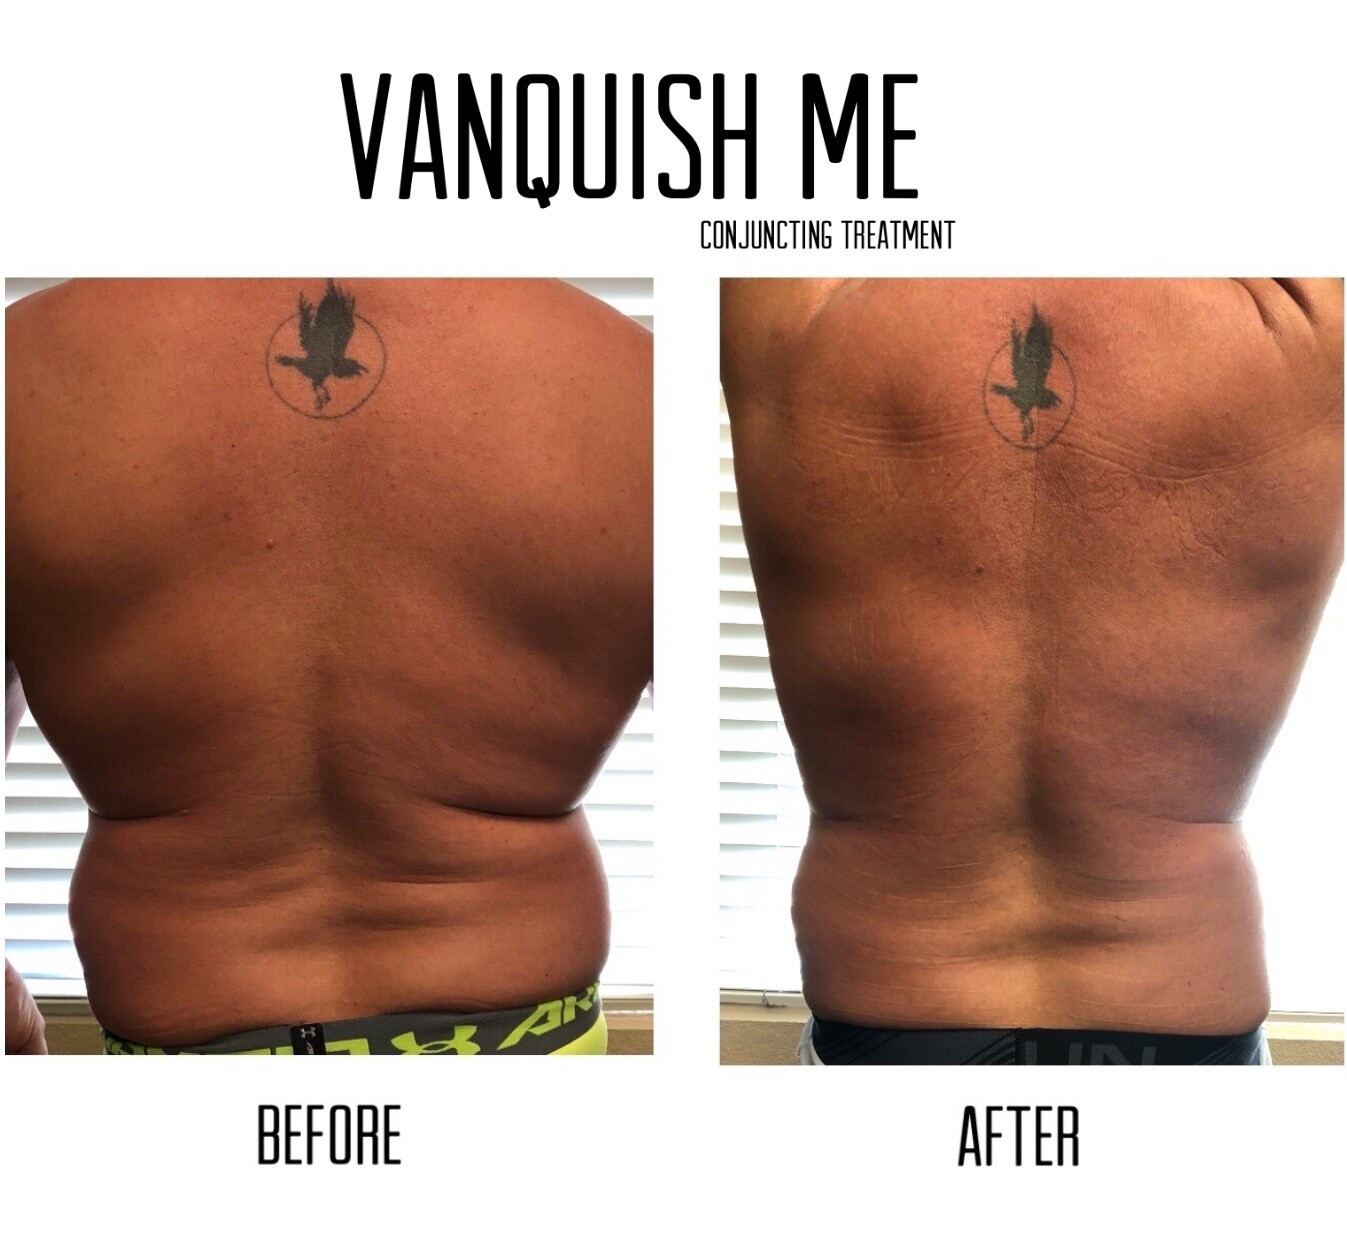 BTL Vanquish Me - example before and after treatment